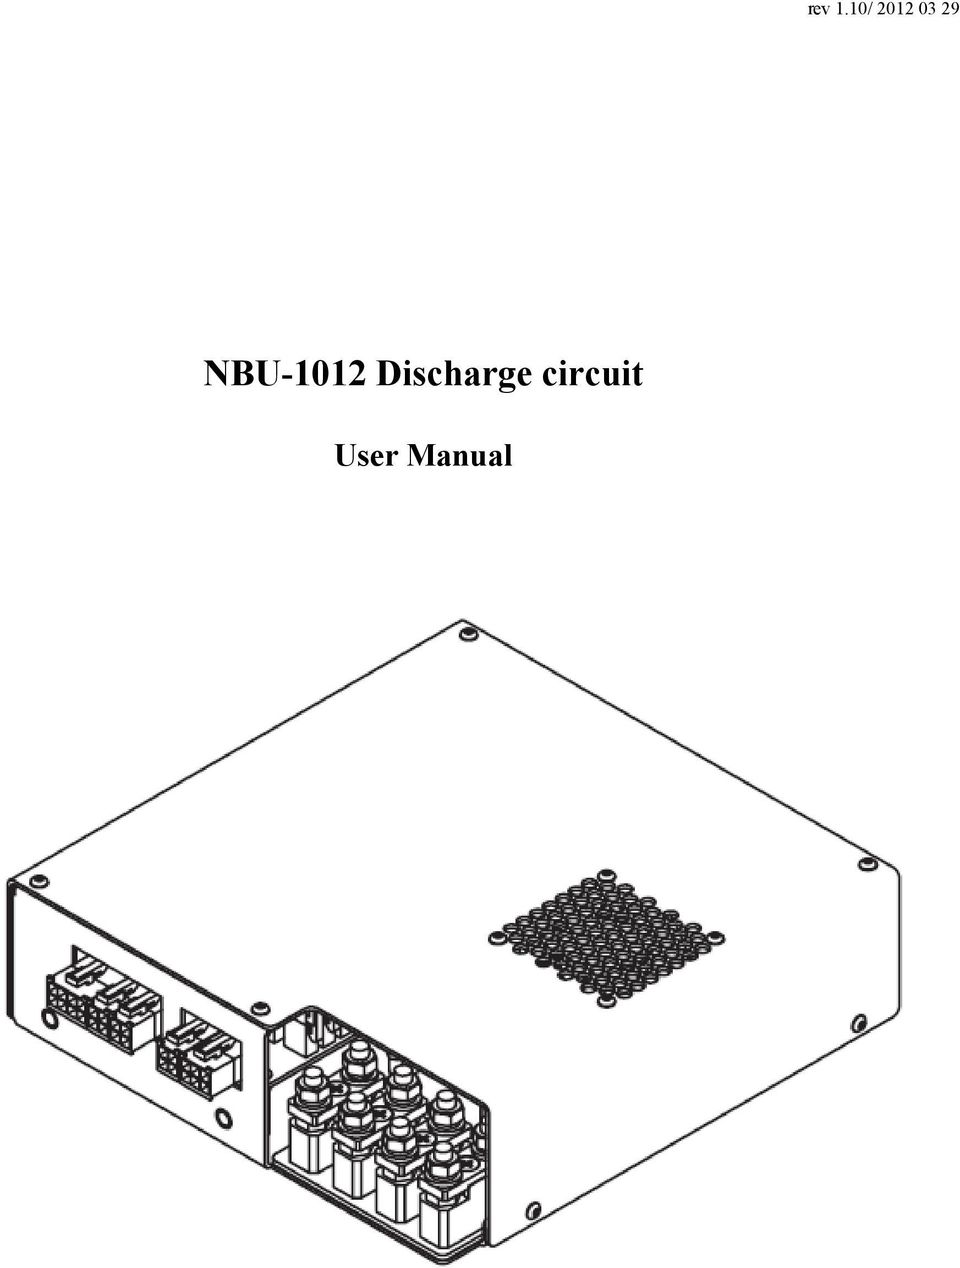 Nbu 1012 Discharge Circuit User Manual Pdf Capacitor Simplification 2 Overview Applications Cooling Is Designed For Of Solid State Laser Systems Development